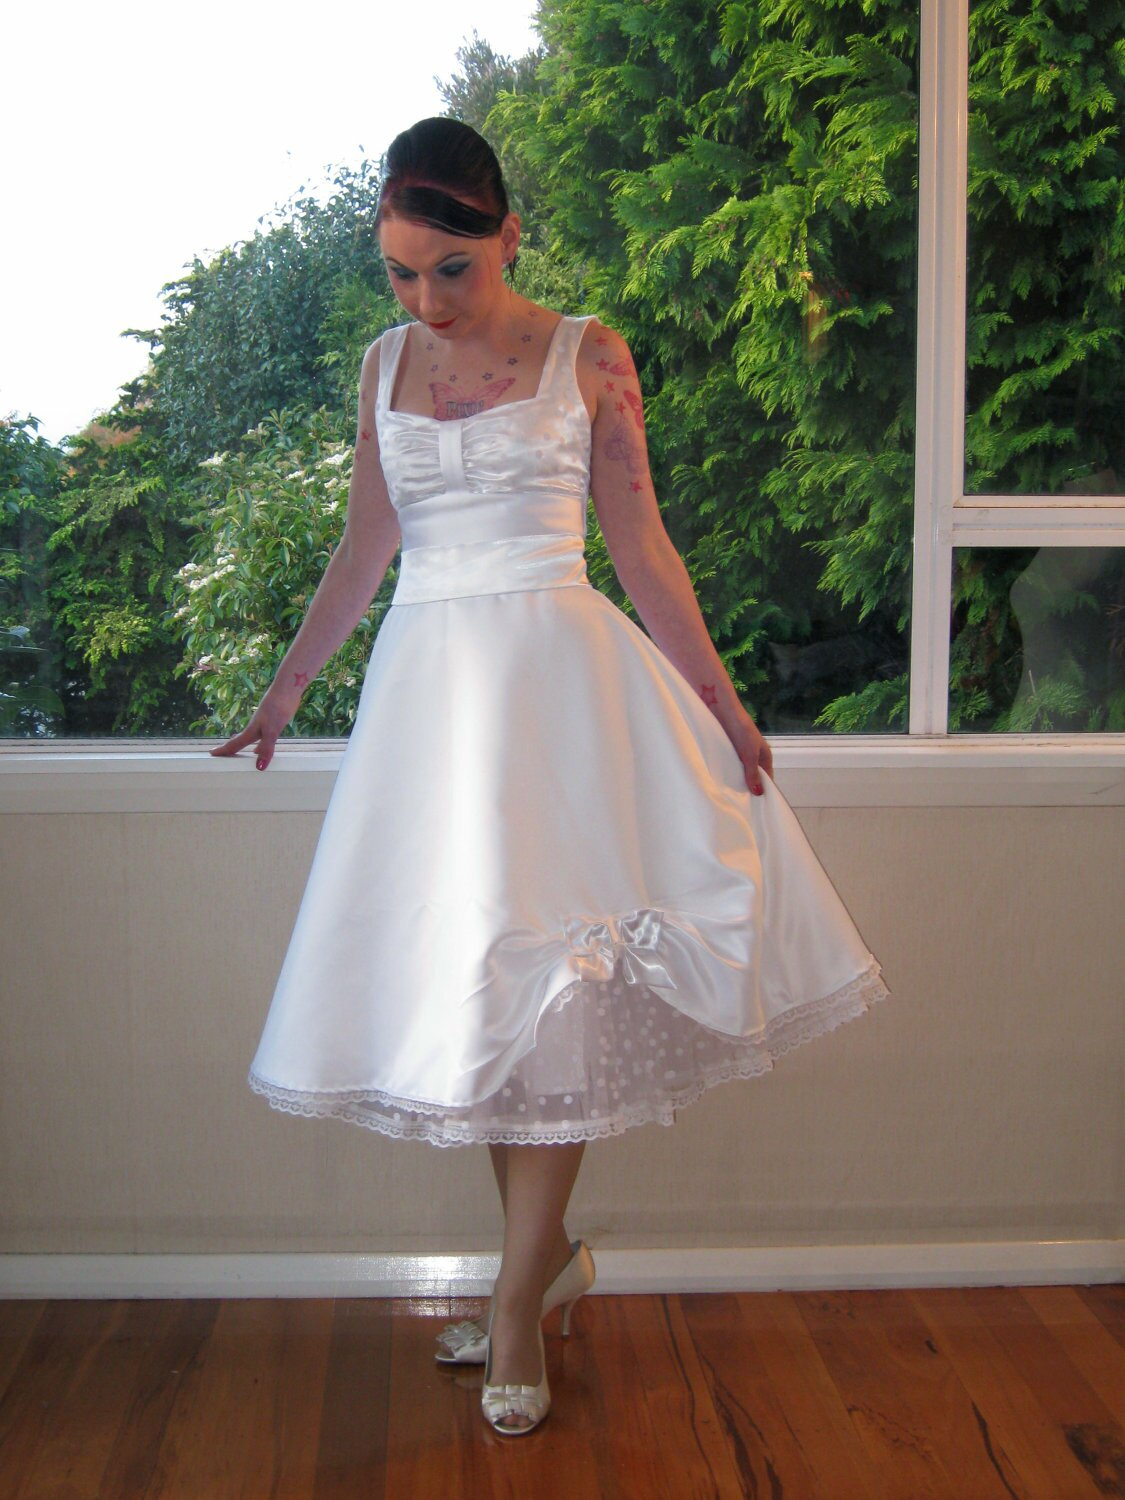 Pin up style wedding dresses pictures ideas guide to for Pin up inspired wedding dresses